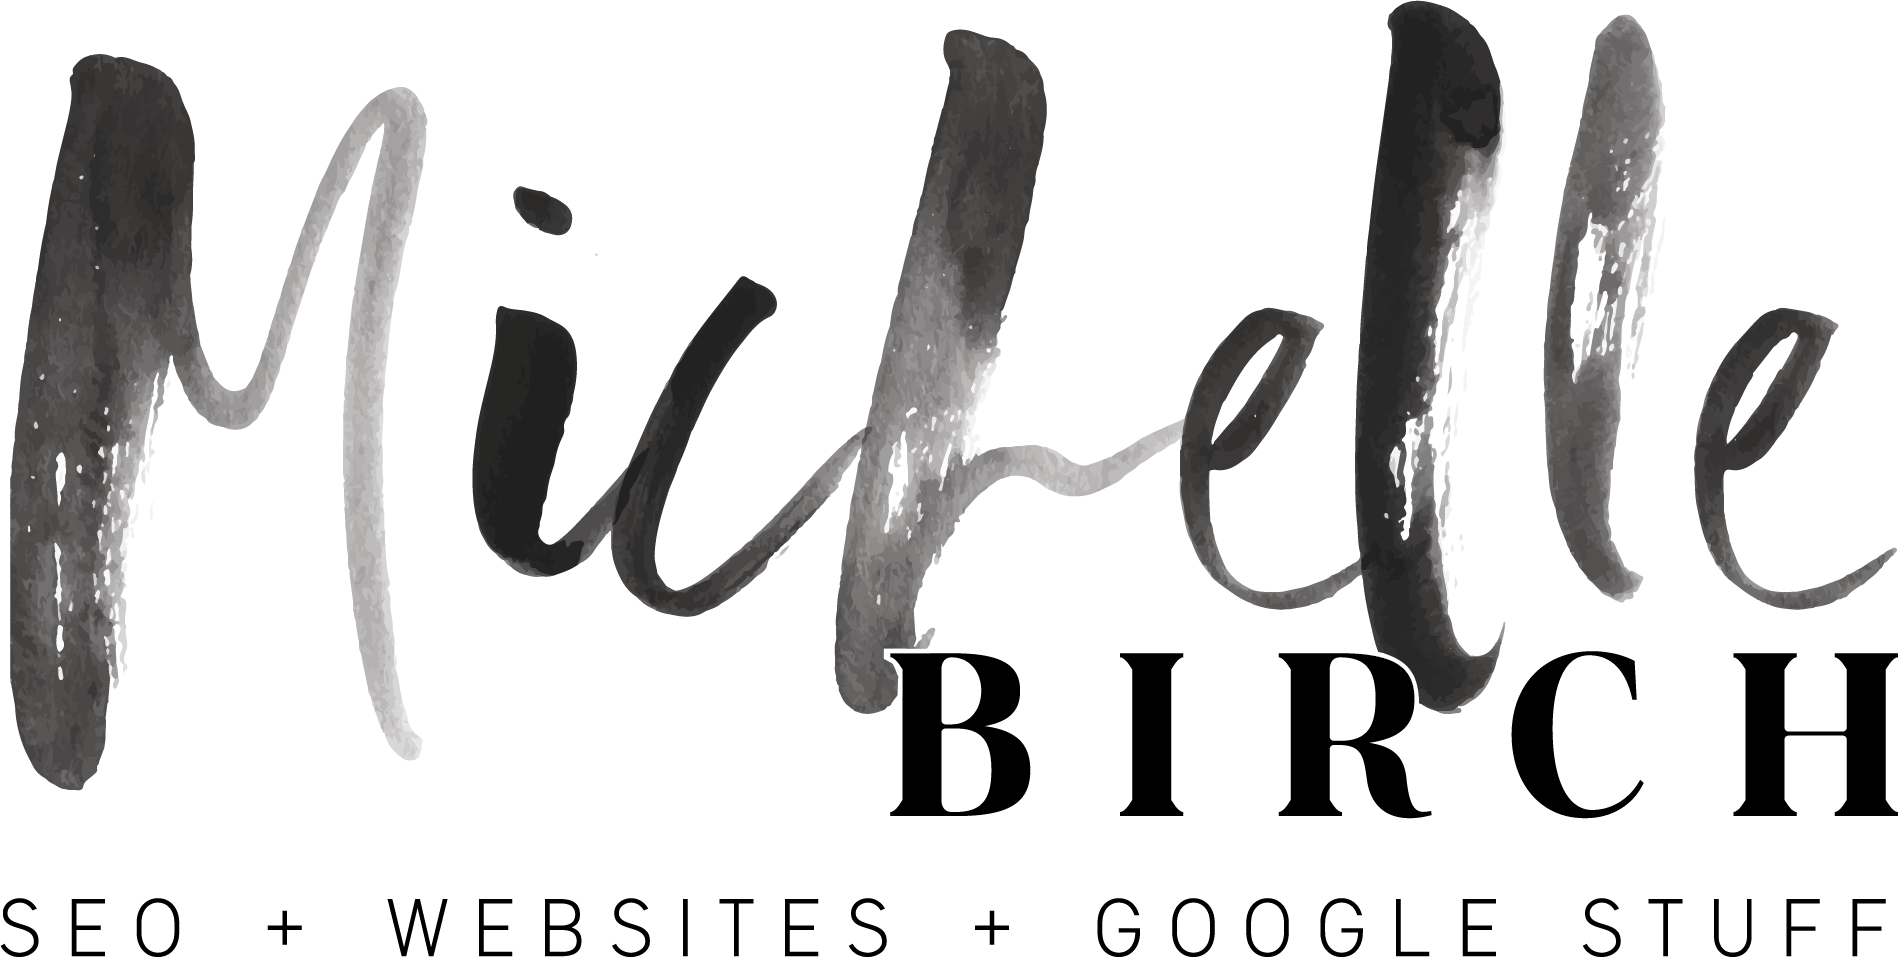 SEO + Websites + Google Stuff | Web Design Perth WA